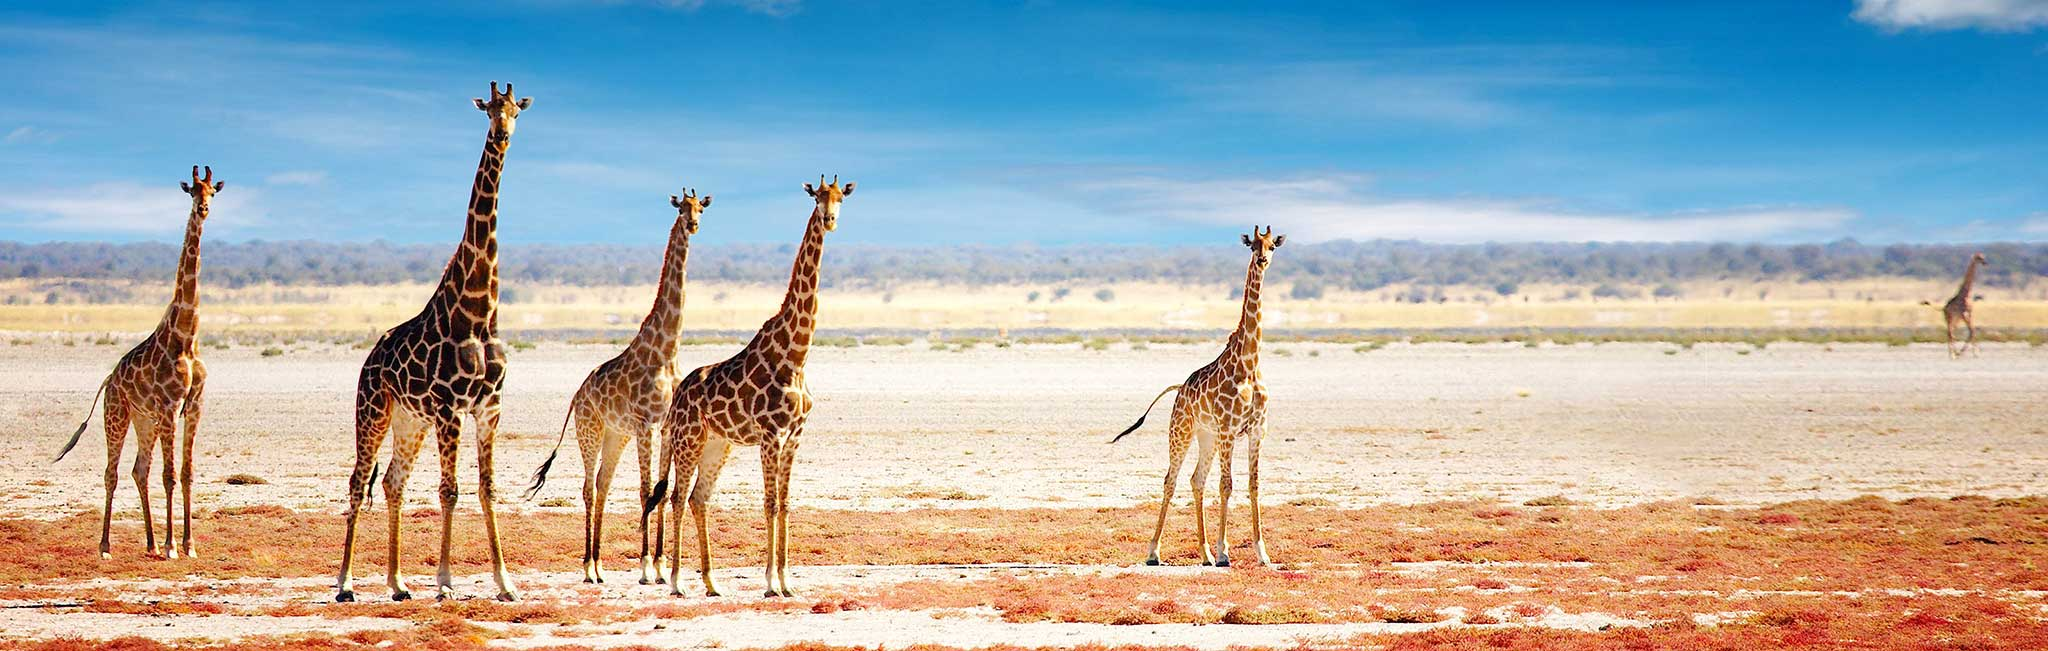 Namibia Safari - Giraffe herd in Etosha National Park